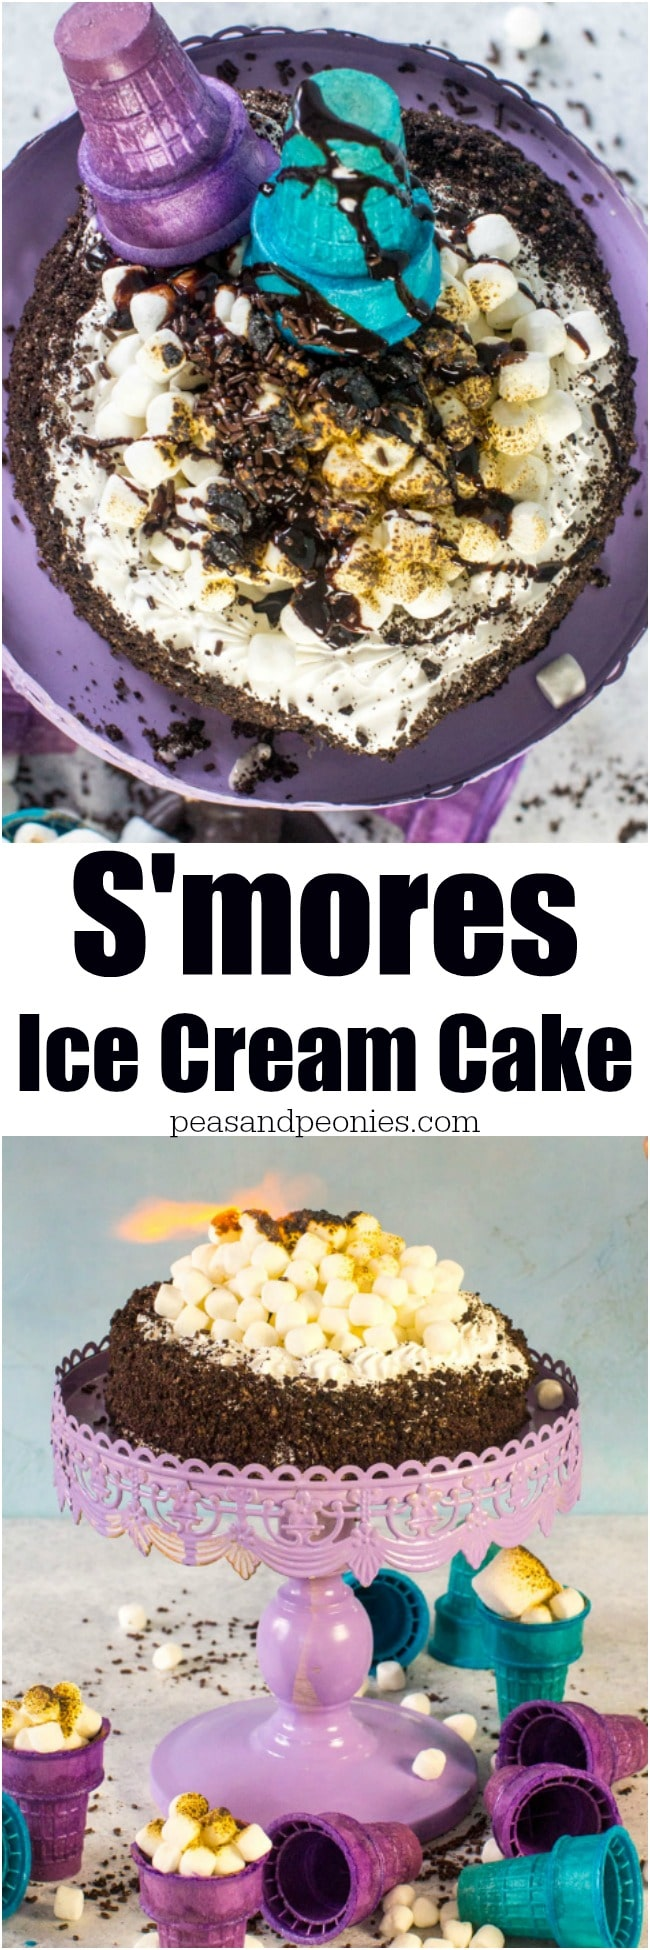 S'mores Ice Cream Cake is so easy and fun to decorate. Customizable and pretty, this cake is great for birthday parties or playdates.